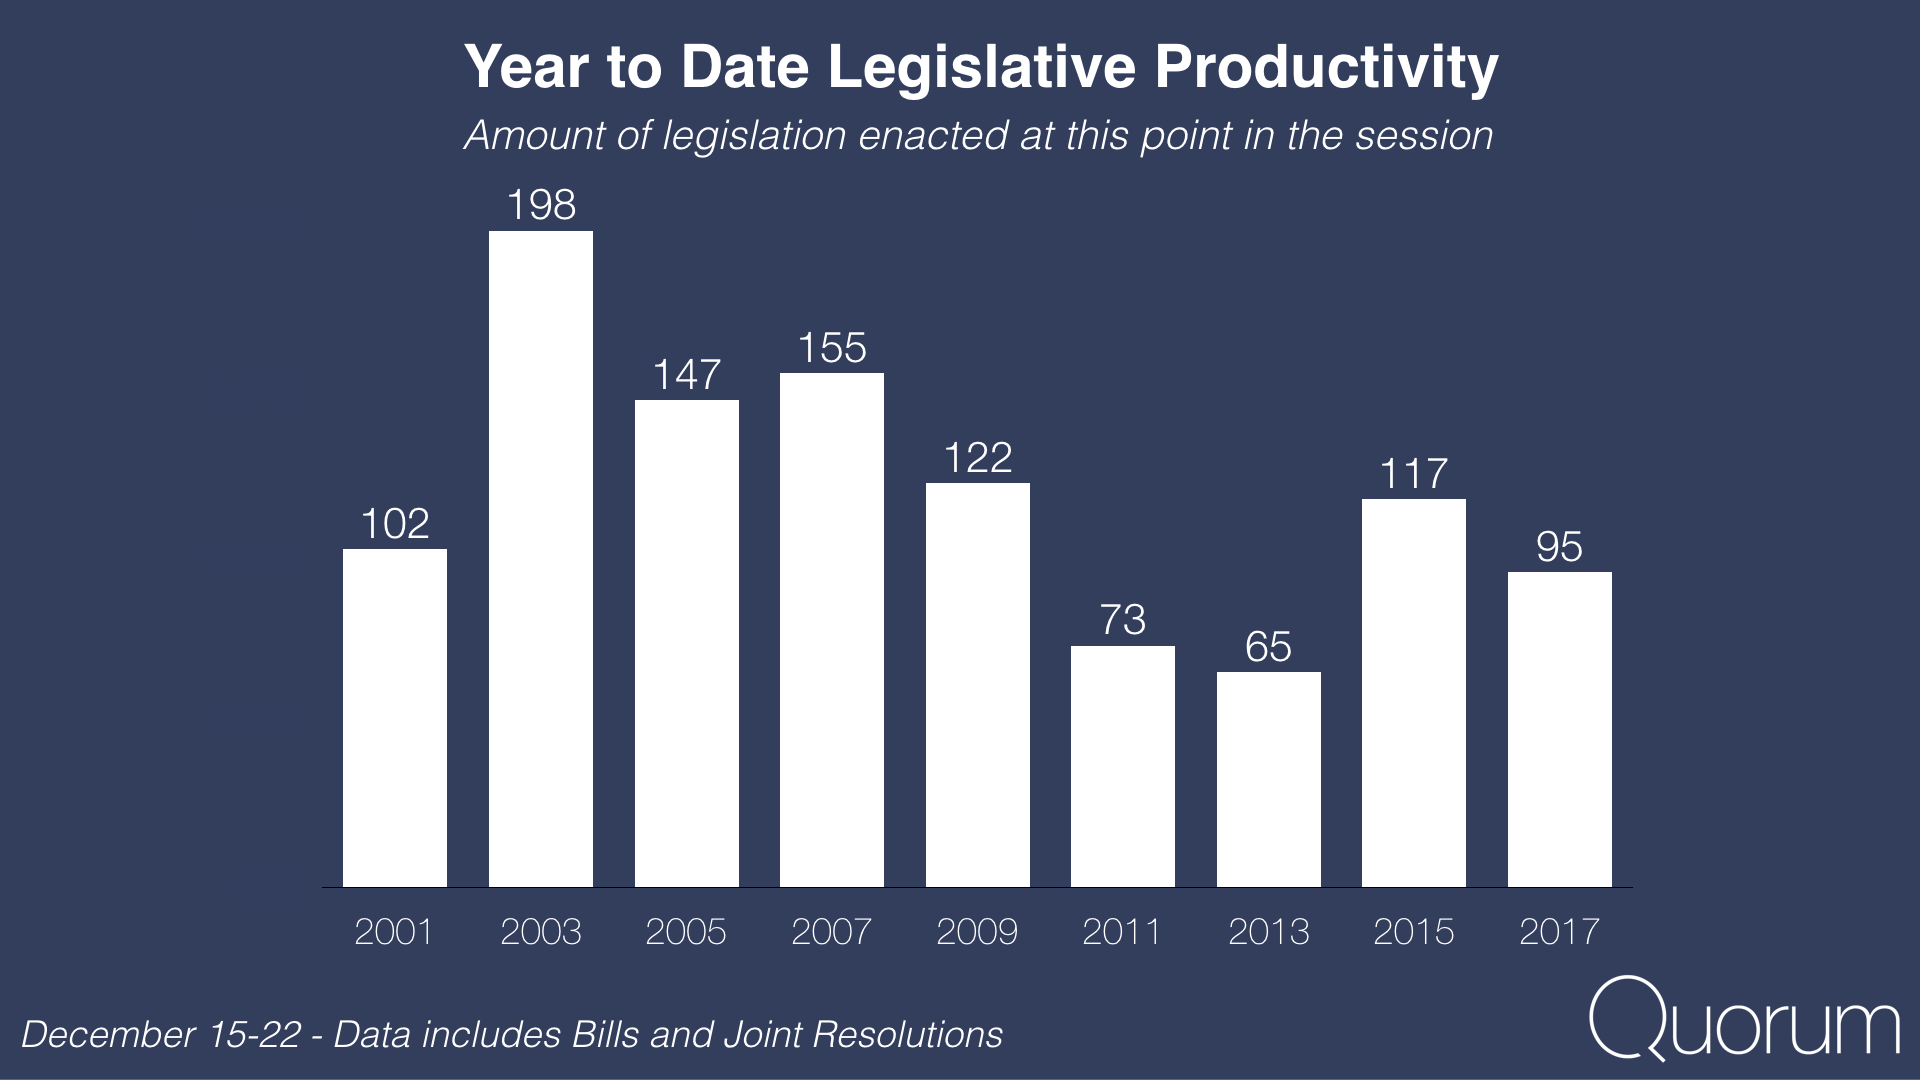 Year to date legislative productivity